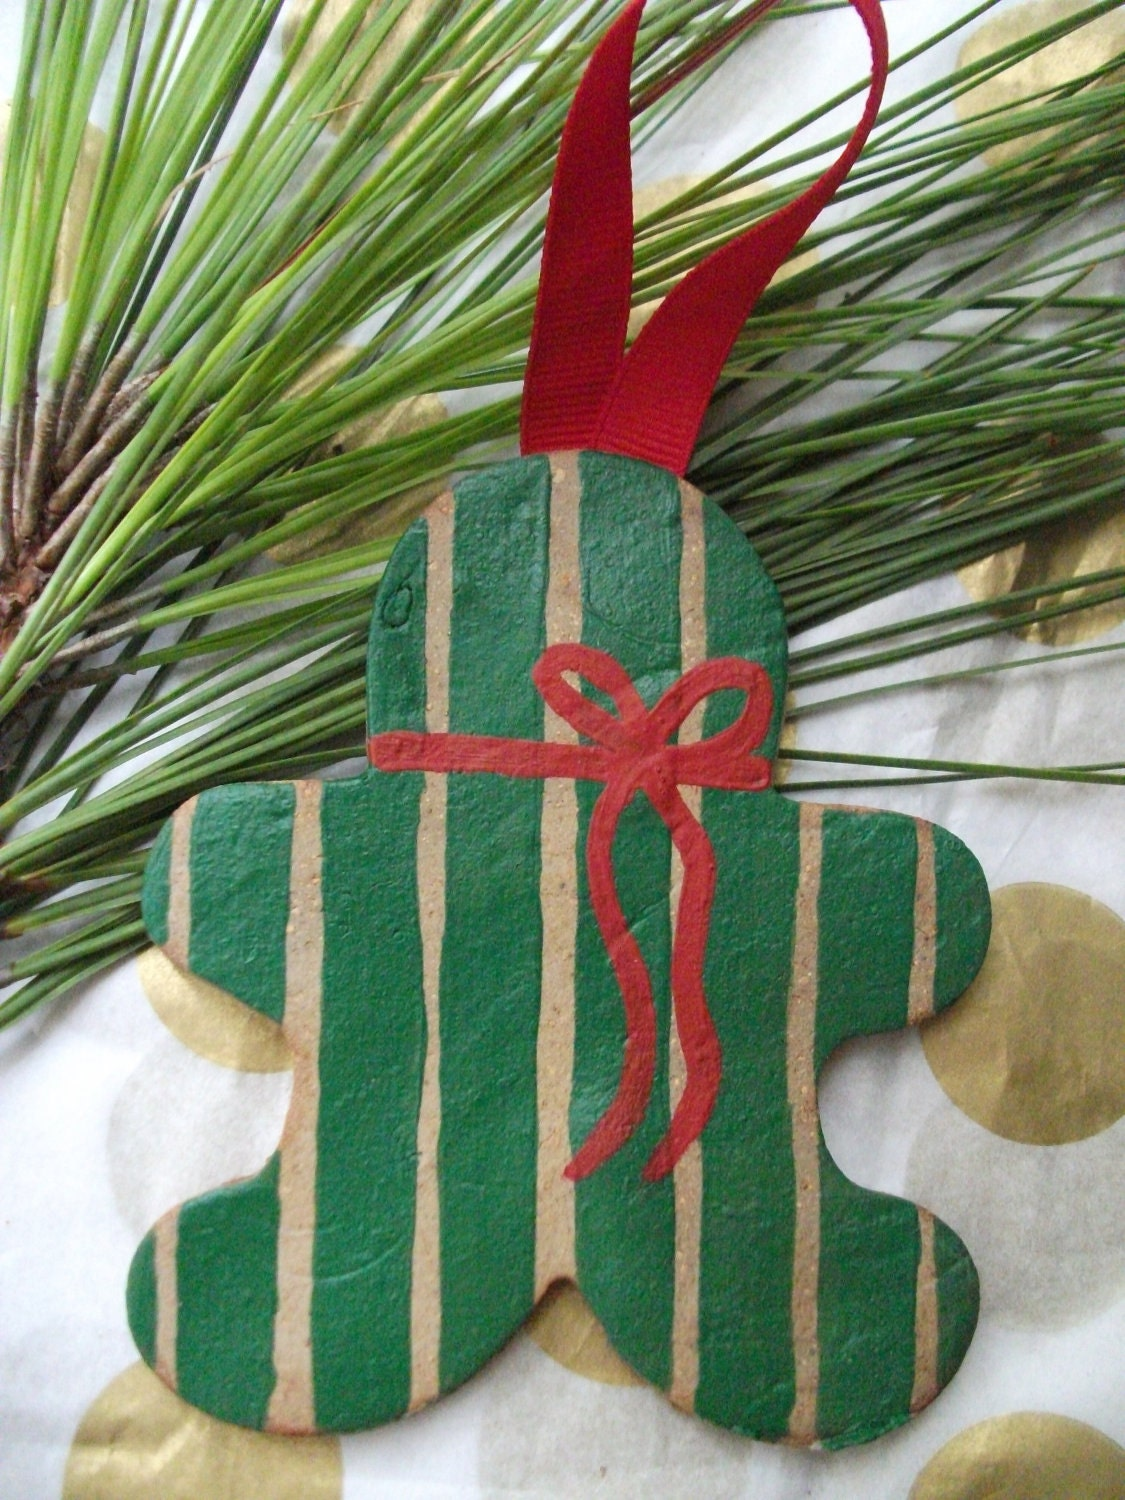 Hand painted gingerbread man Christmas ornament with green stripes and red bow - BetweenThePines